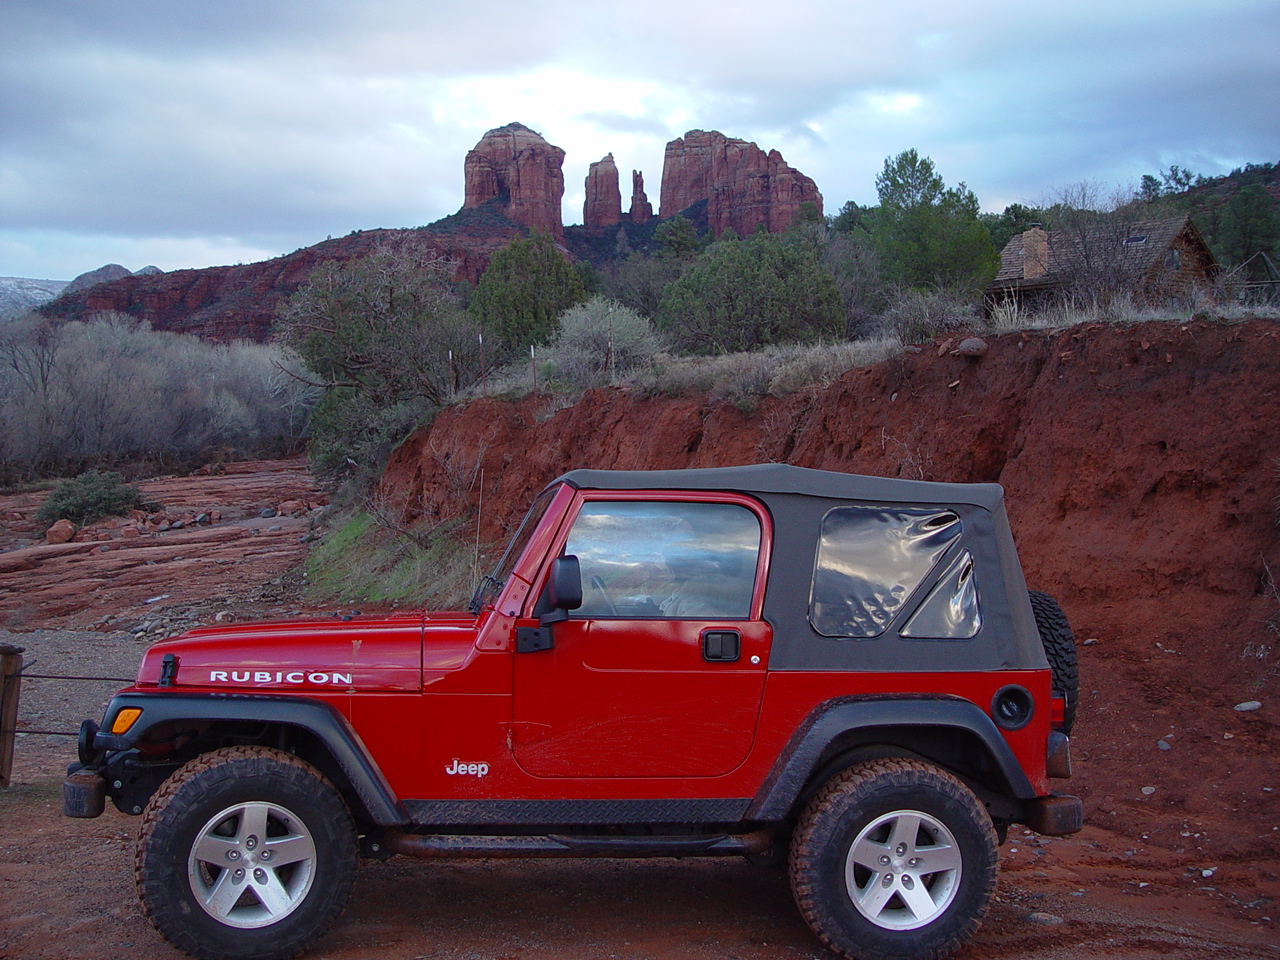 Celebrate Rock Climbing and 4 x 4 Day in the Red Rocks of Sedona AZ…. Off Road!